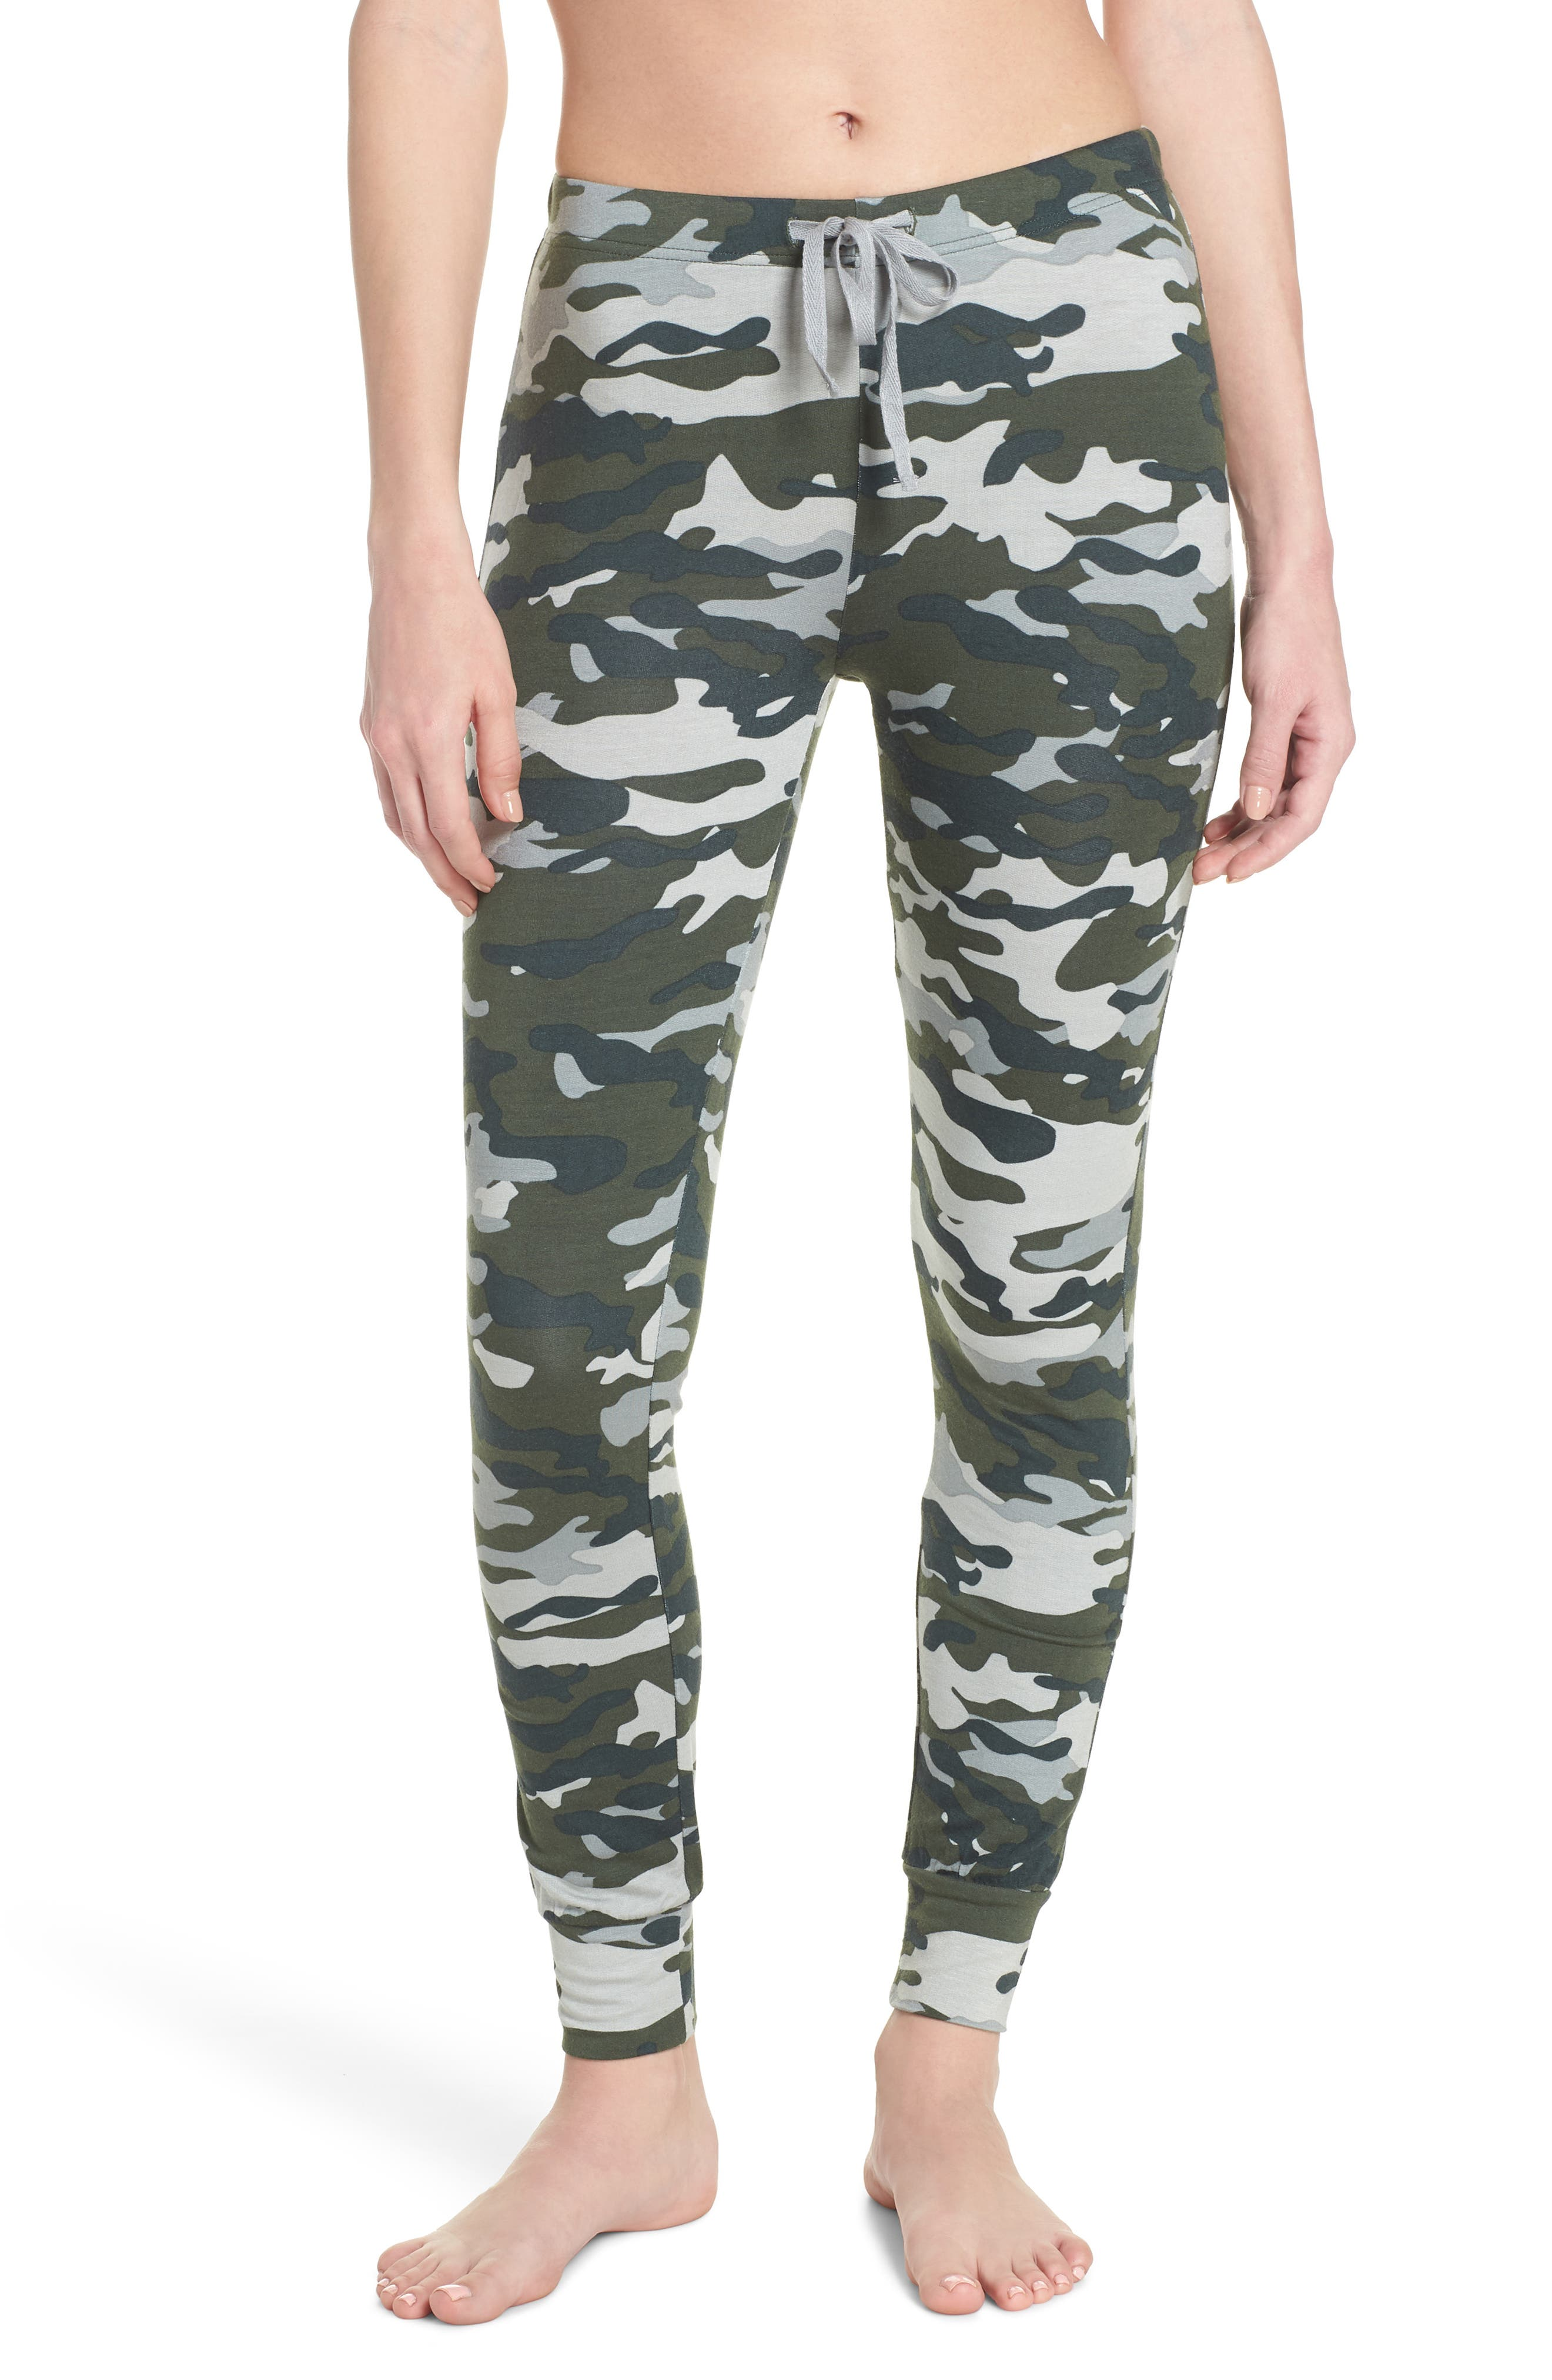 Kickin' It French Terry Lounge Pants,                         Main,                         color, Army